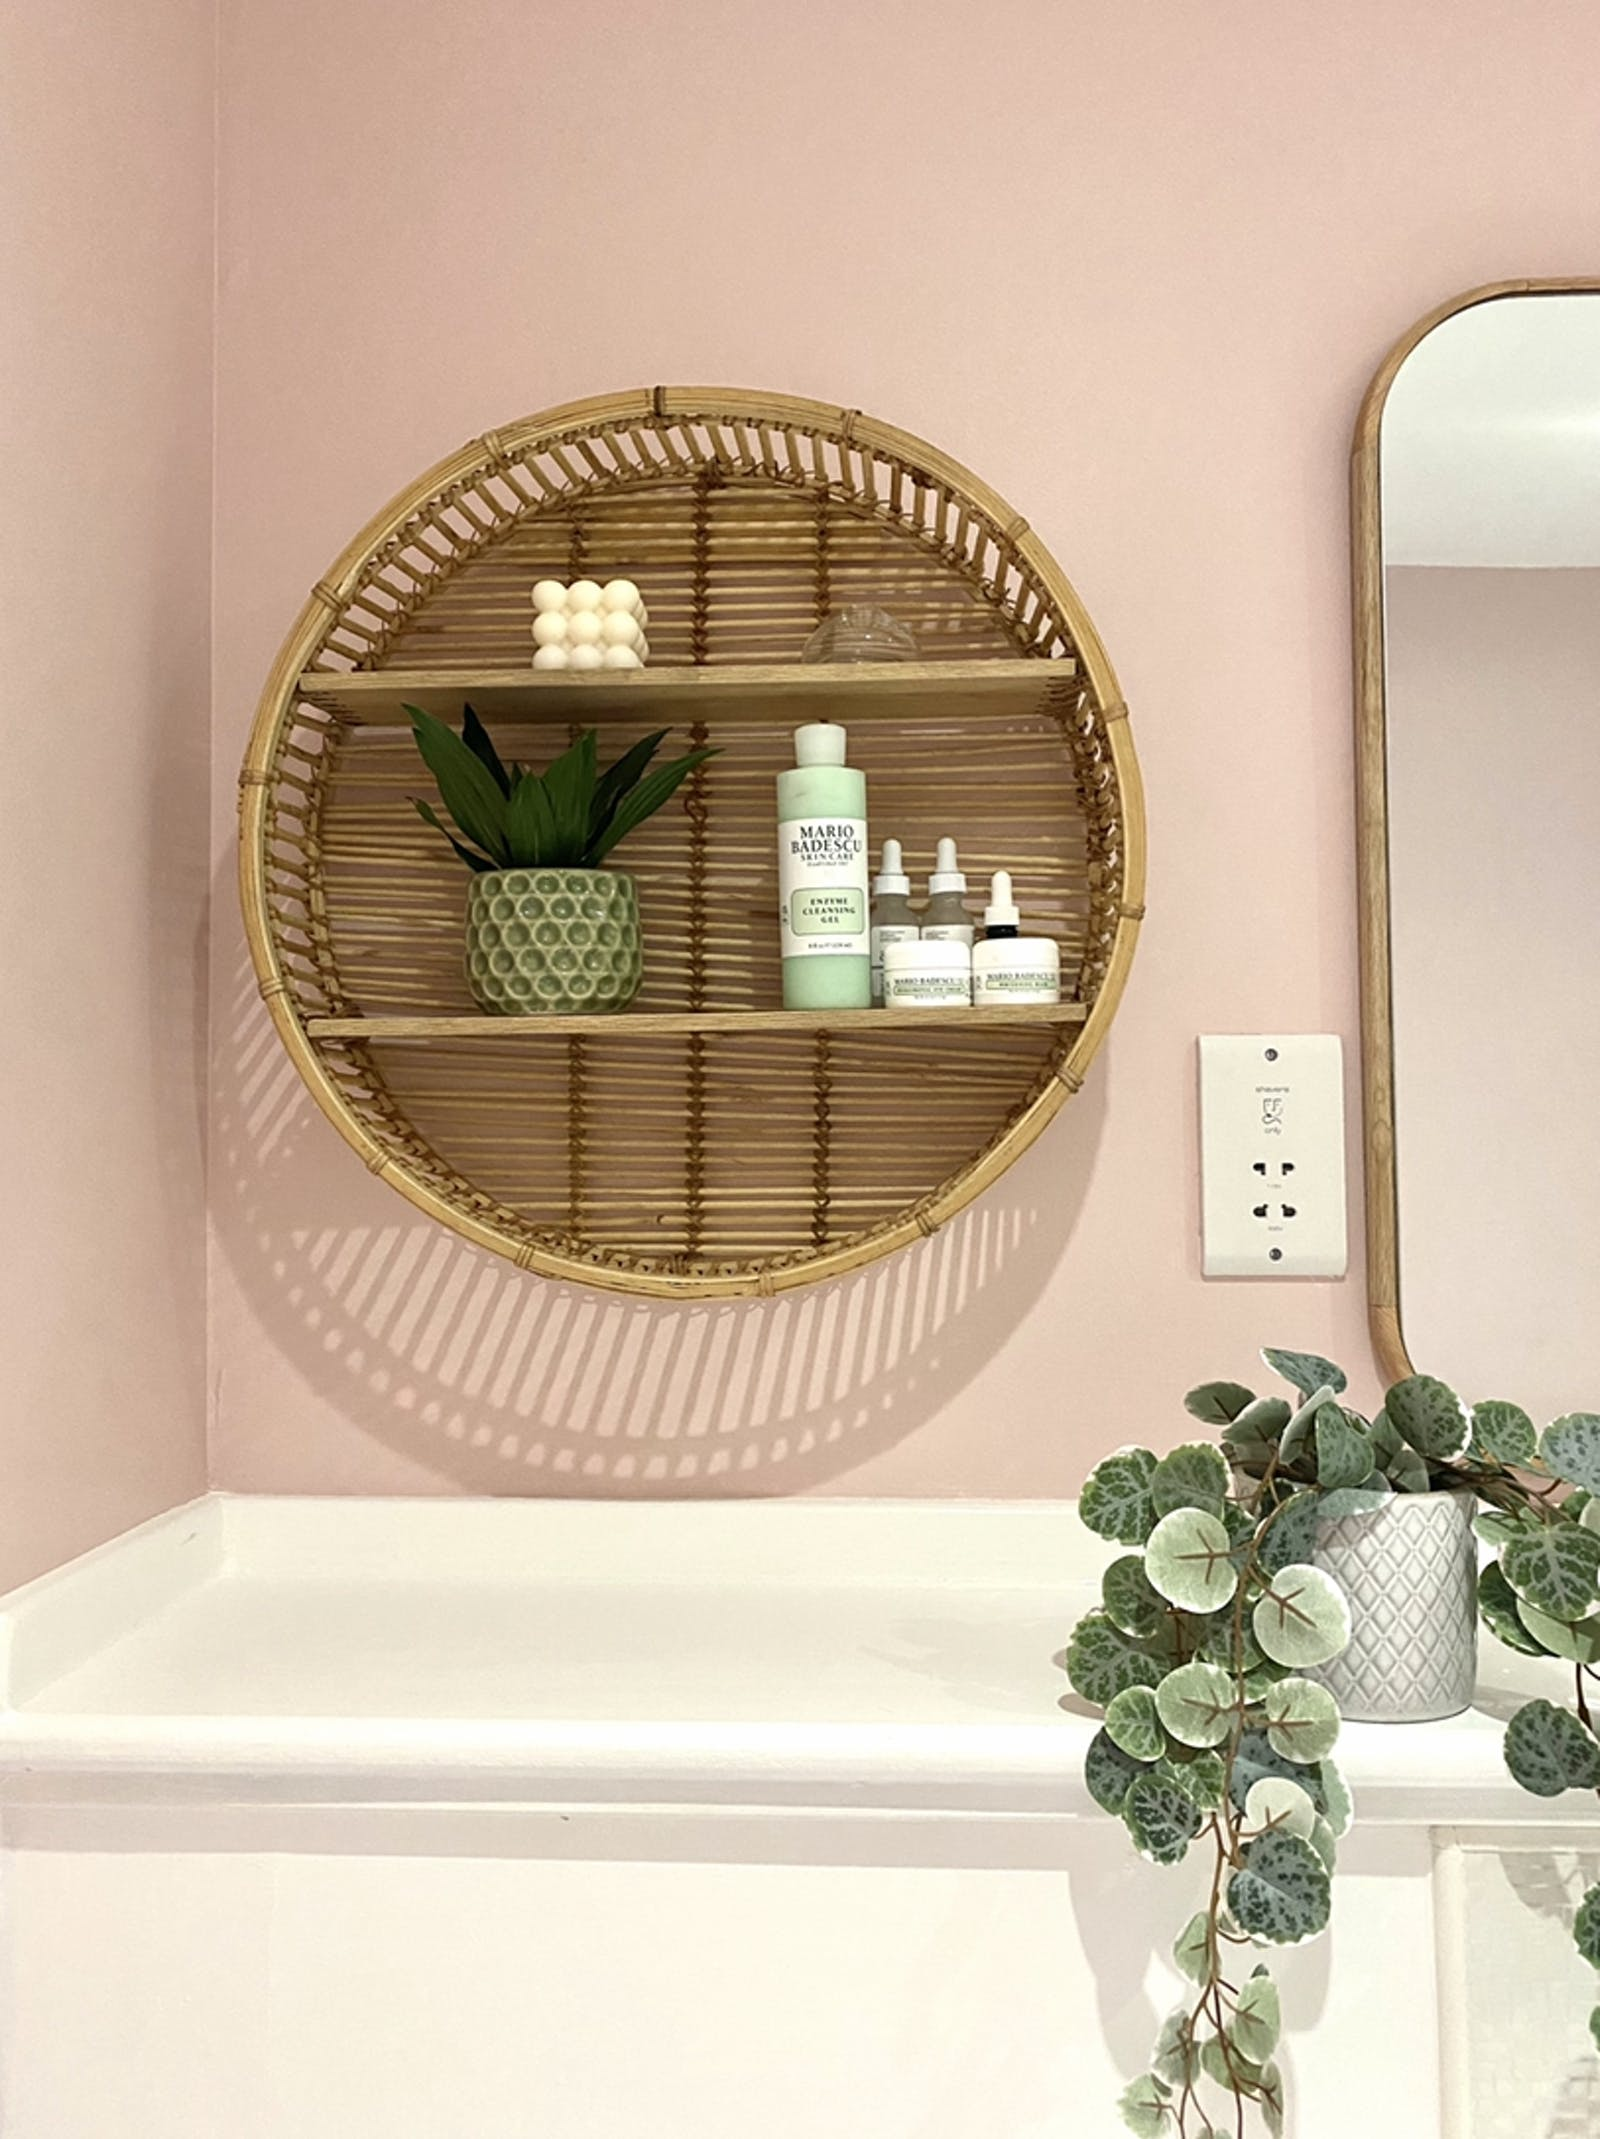 Bathroom painted in Pink 03, with green plants